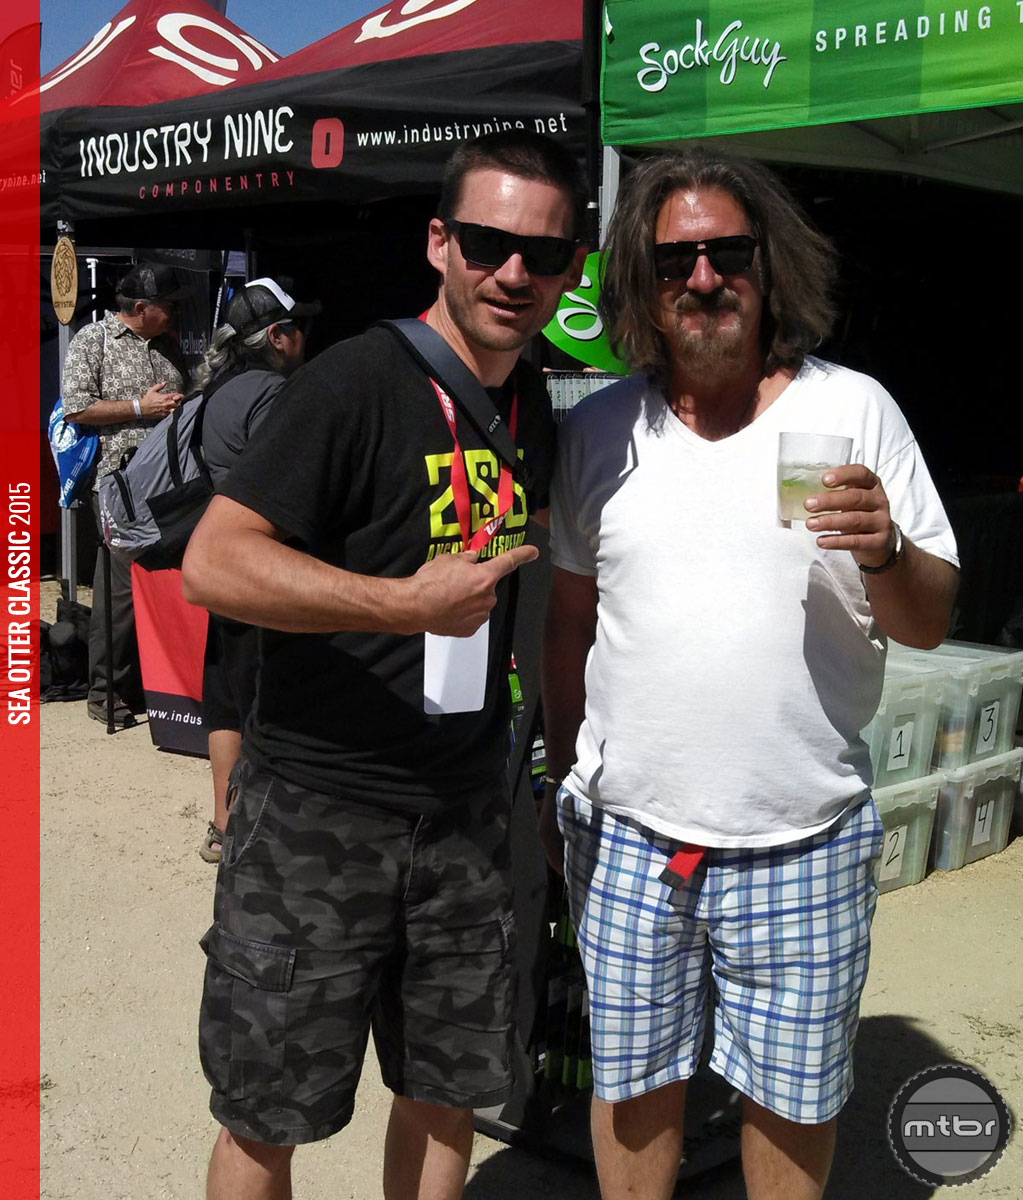 Even The Dude loves hanging at Sea Otter even if he is holding the wrong beverage.